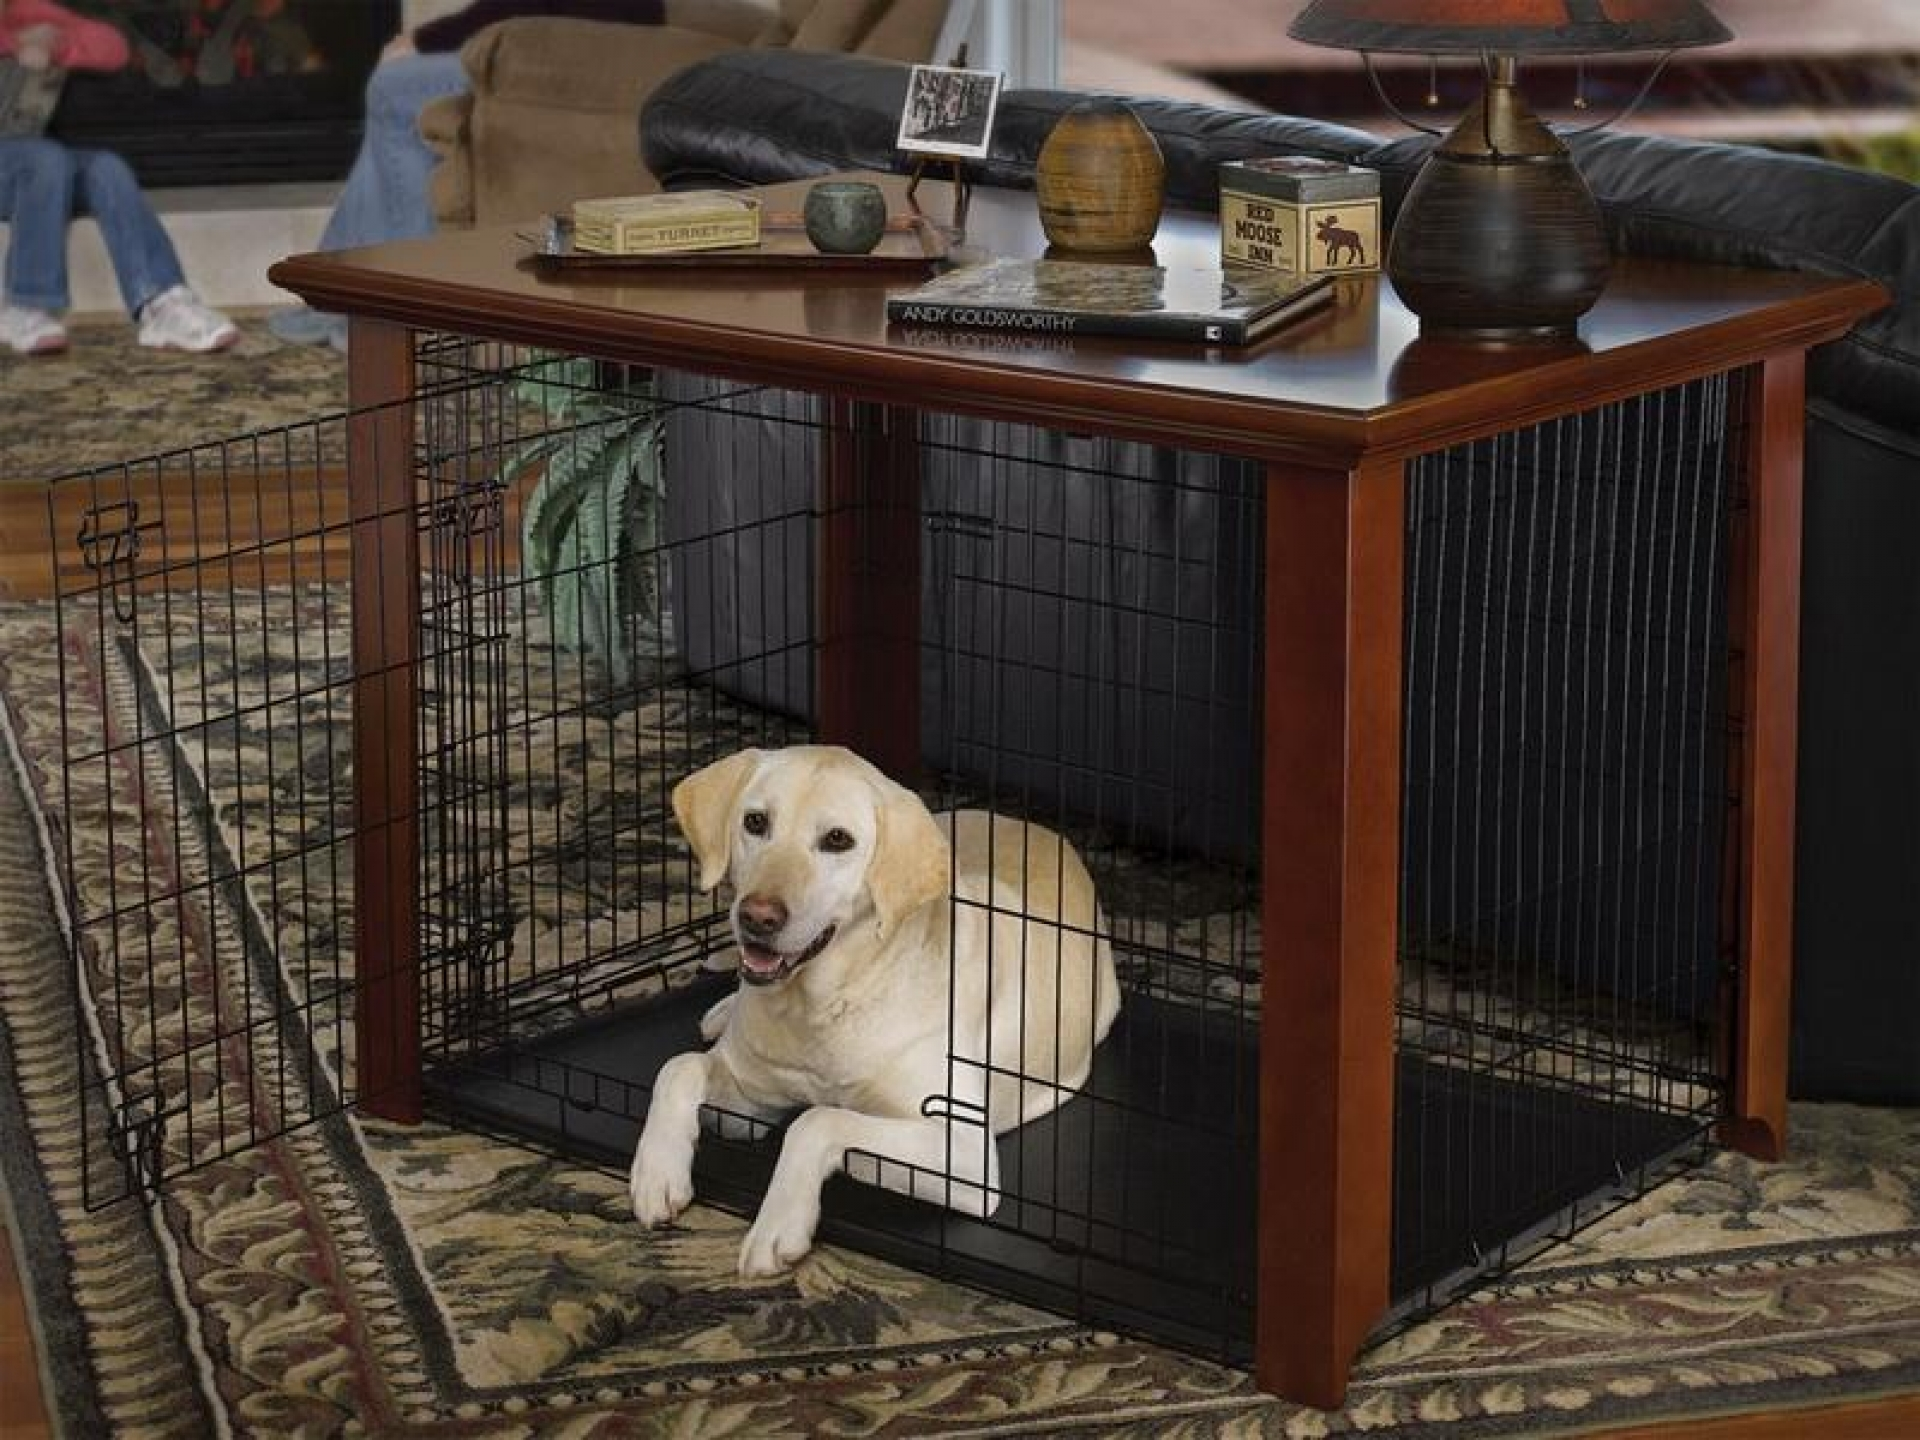 dog crate end table large paristriptips design wooden magnolia farms coffee ethan allen shelf broyhill outdoor patio furniture black industrial simple ashley bar sets craigslist